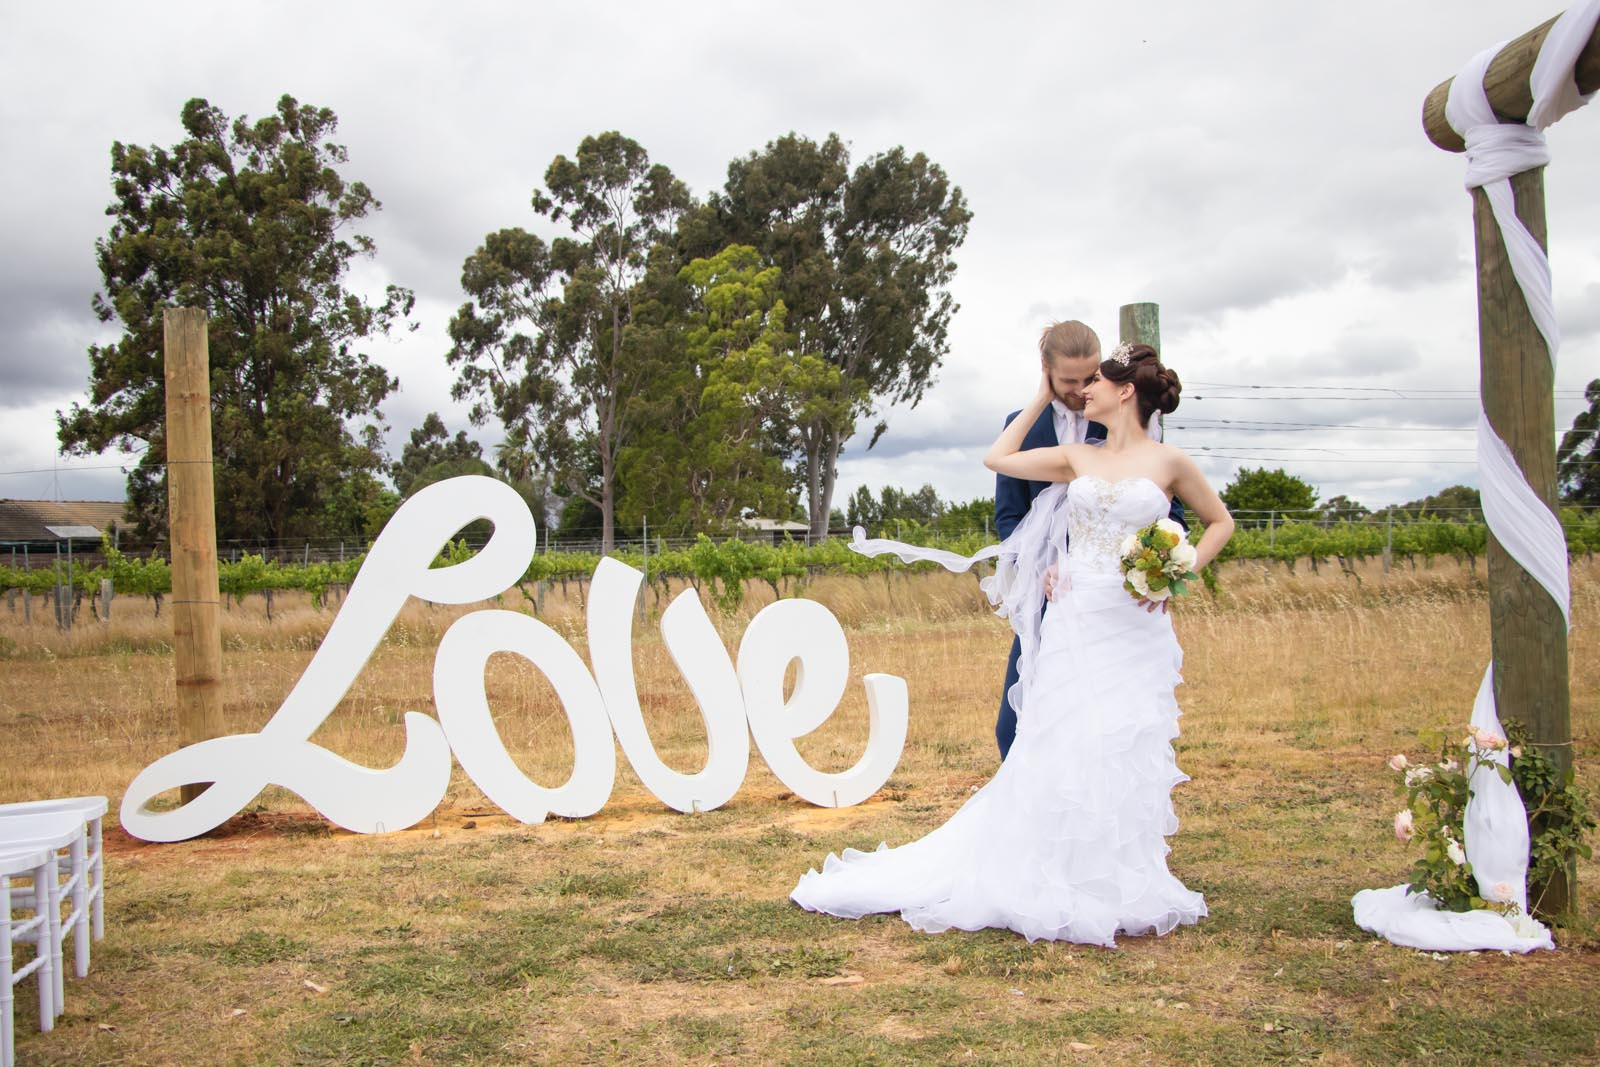 Bride and groom embracing with love sign